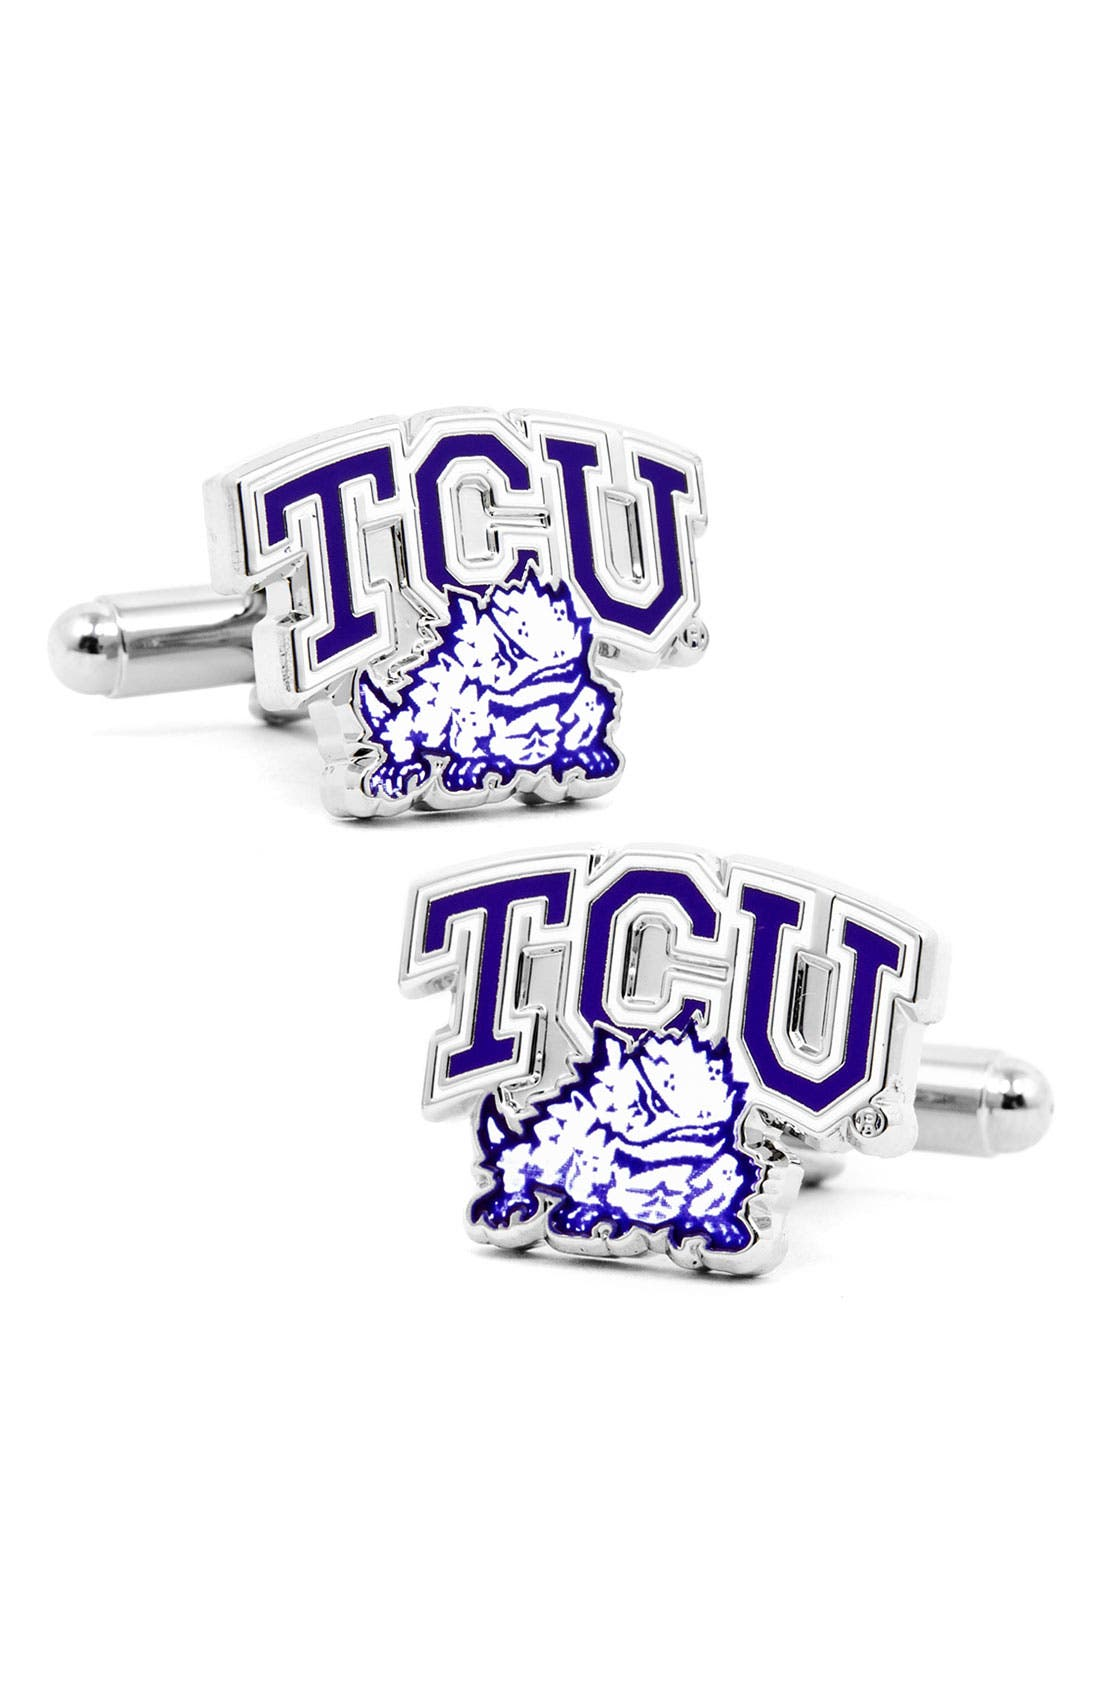 'TCU Horned Frogs' Cuff Links,                             Main thumbnail 1, color,                             500